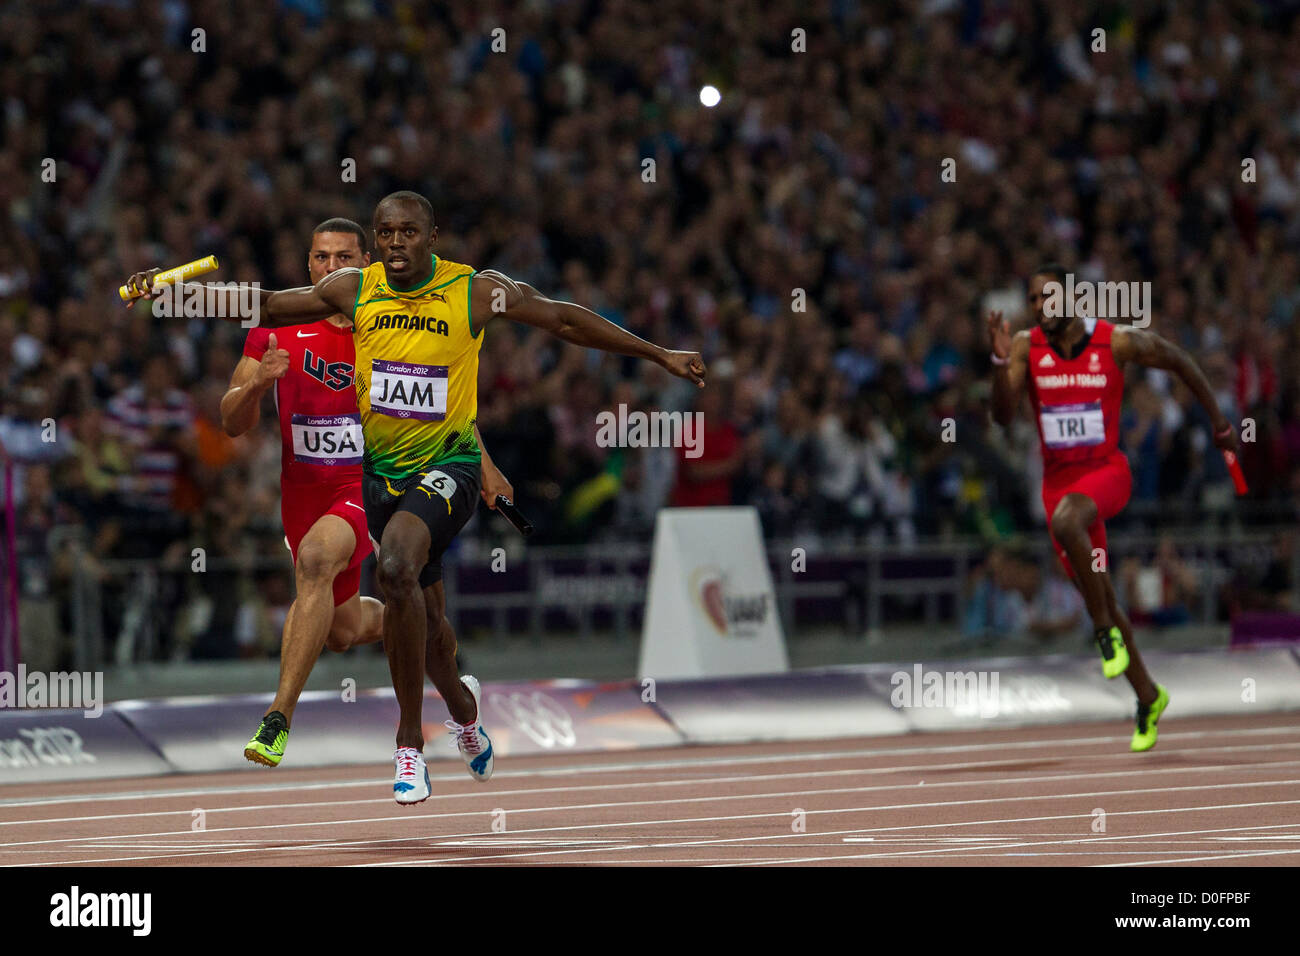 Usain Bolt winning the gold medal for Jamaican in the 4X100m relay at the Olympic Summer Games, London 2012 - Stock Image